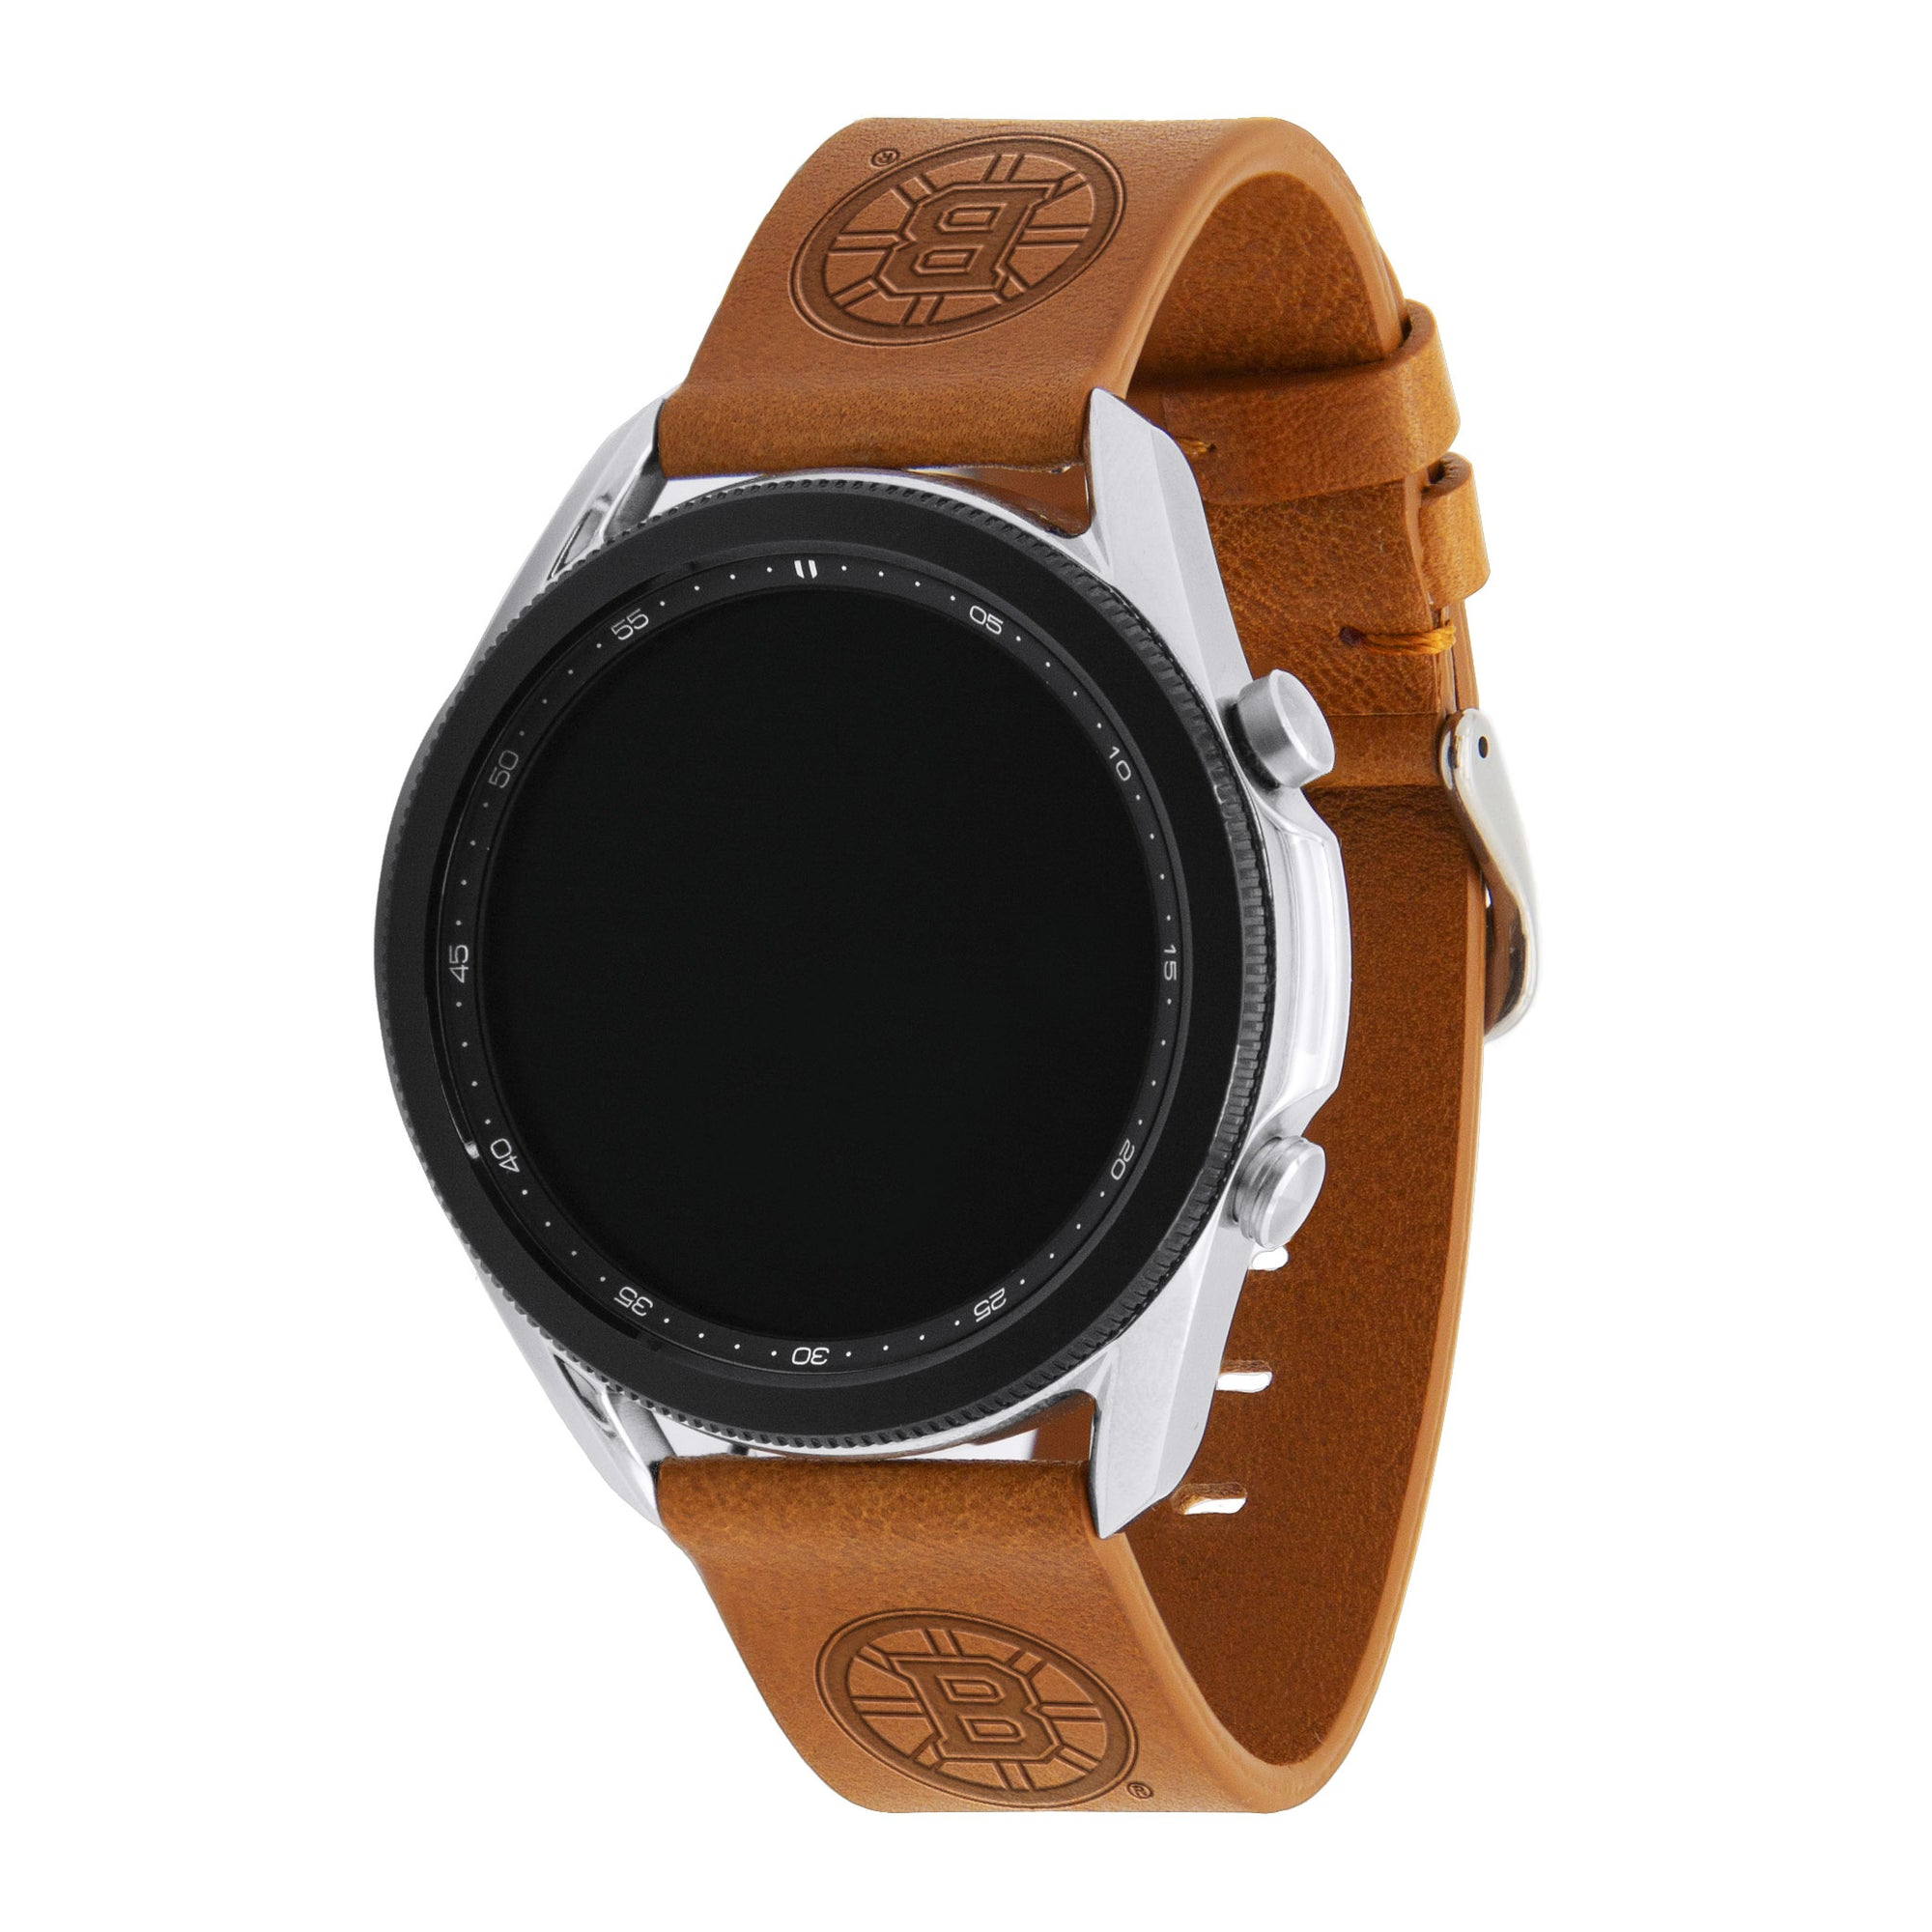 Boston Bruins Quick Change Leather Watch Band - AffinityBands